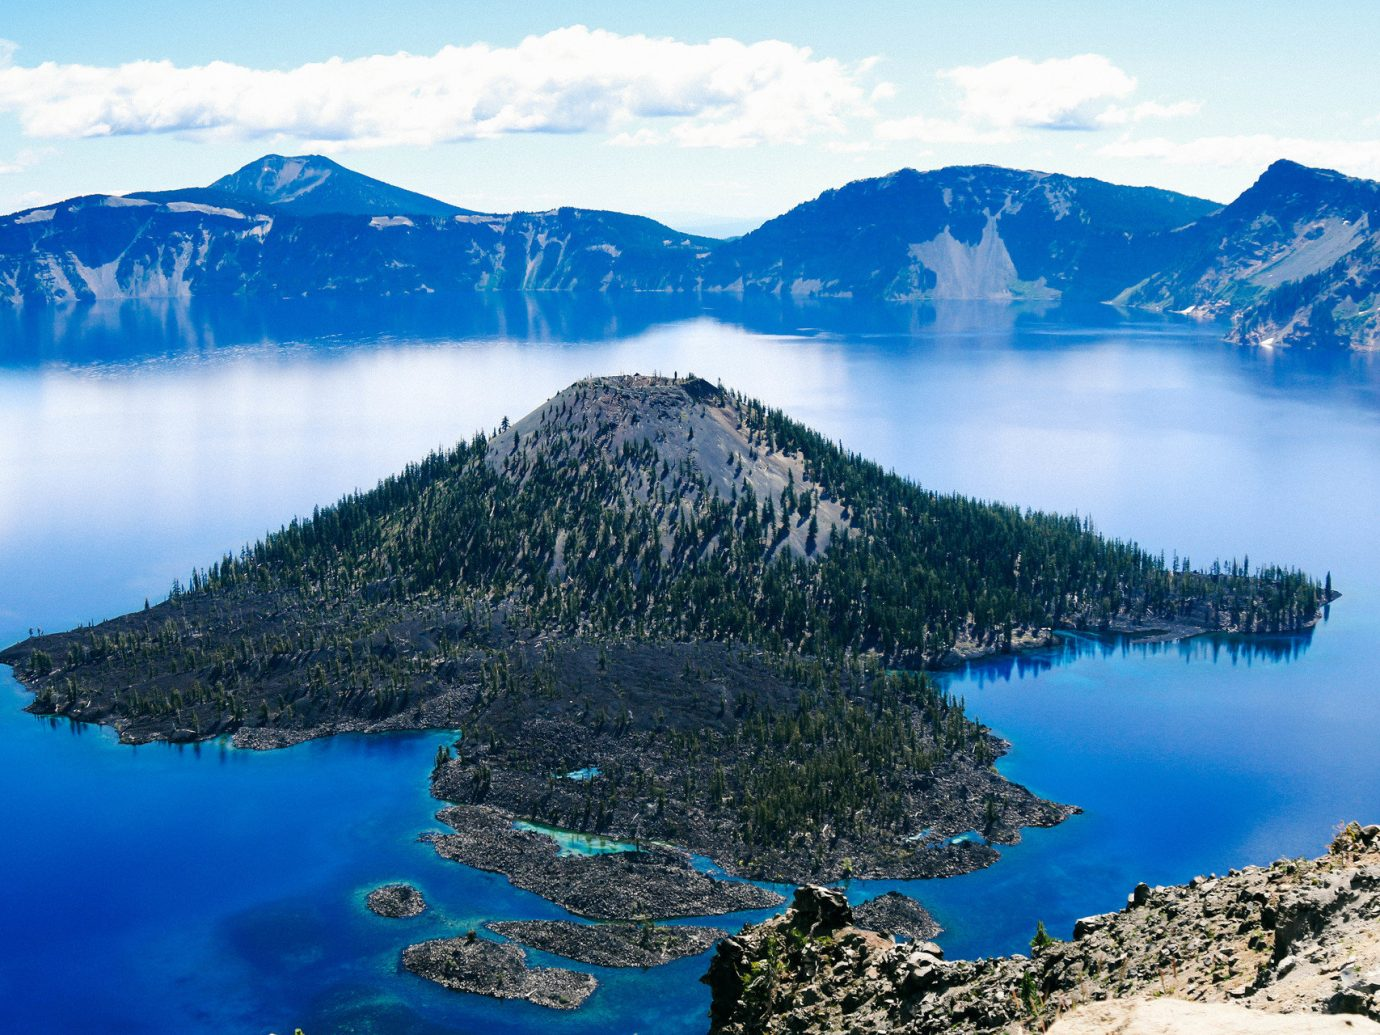 Jetsetter Guides Road Trips Trip Ideas sky mountain outdoor Nature water snow Lake landform geographical feature crater lake reflection loch mountain range fell fjord reservoir bay national park surrounded